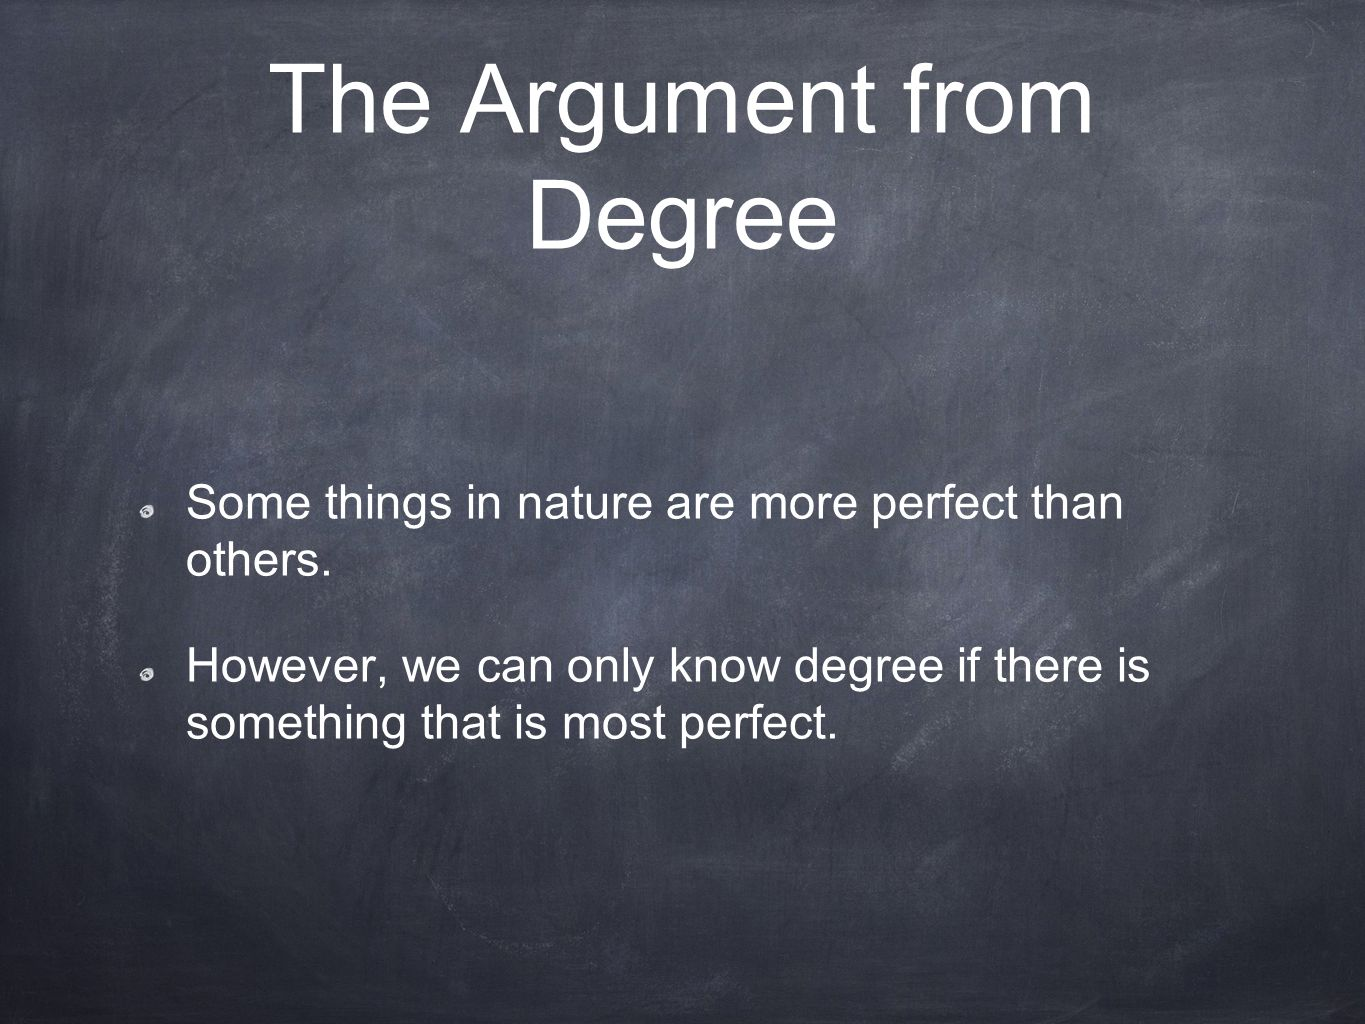 The Argument from Degree